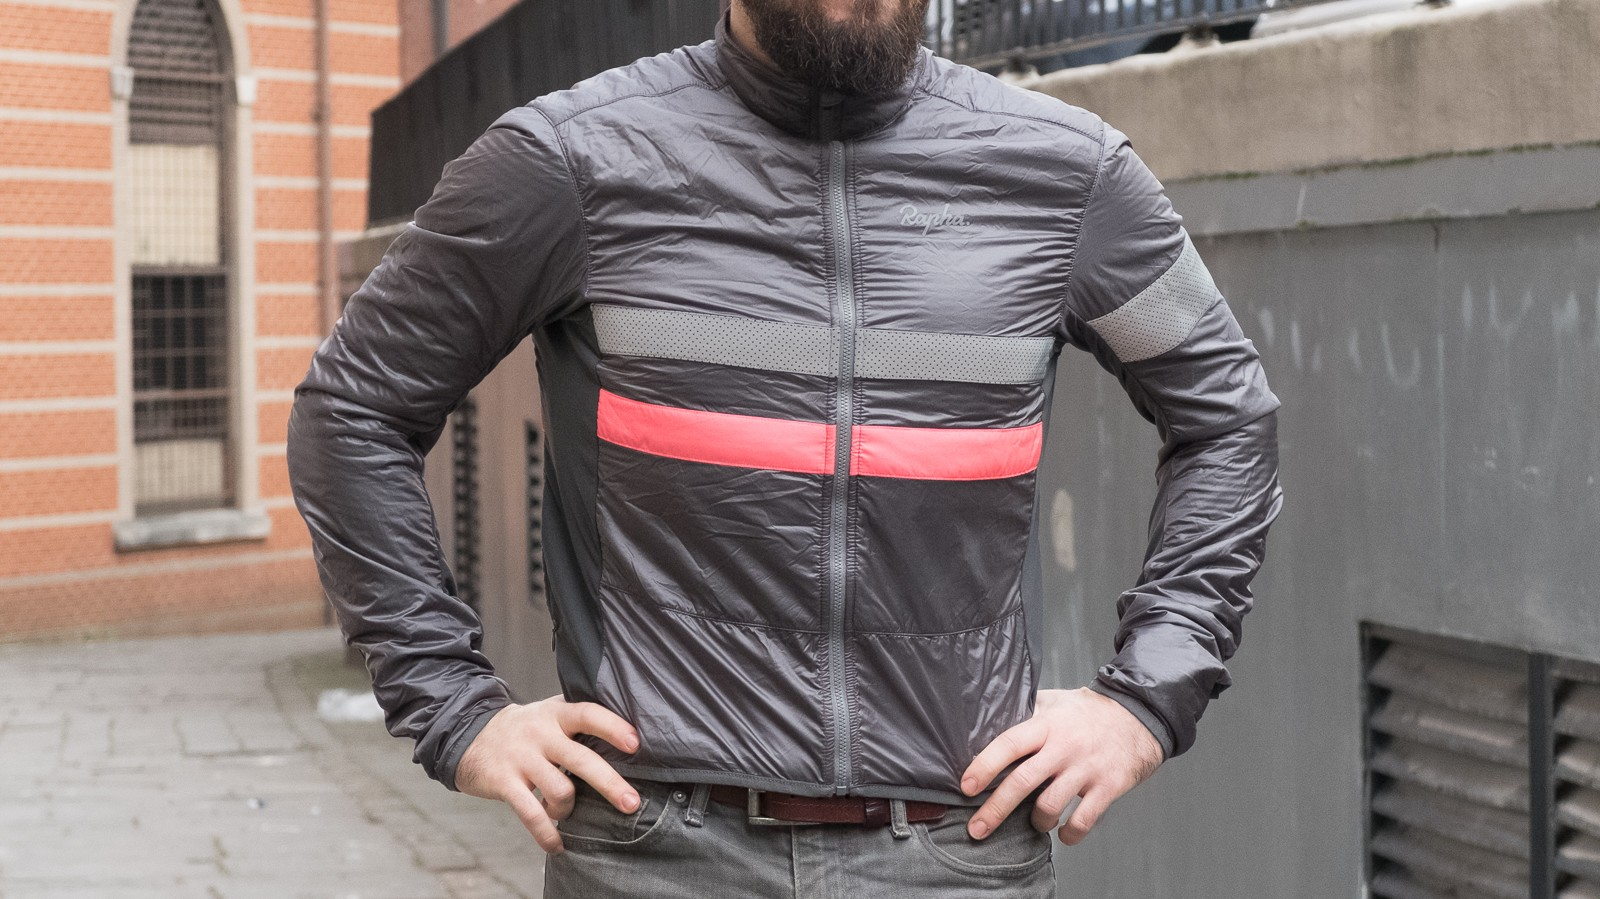 The cut of the jacket is pretty snug, but we think that will help keep you cosy